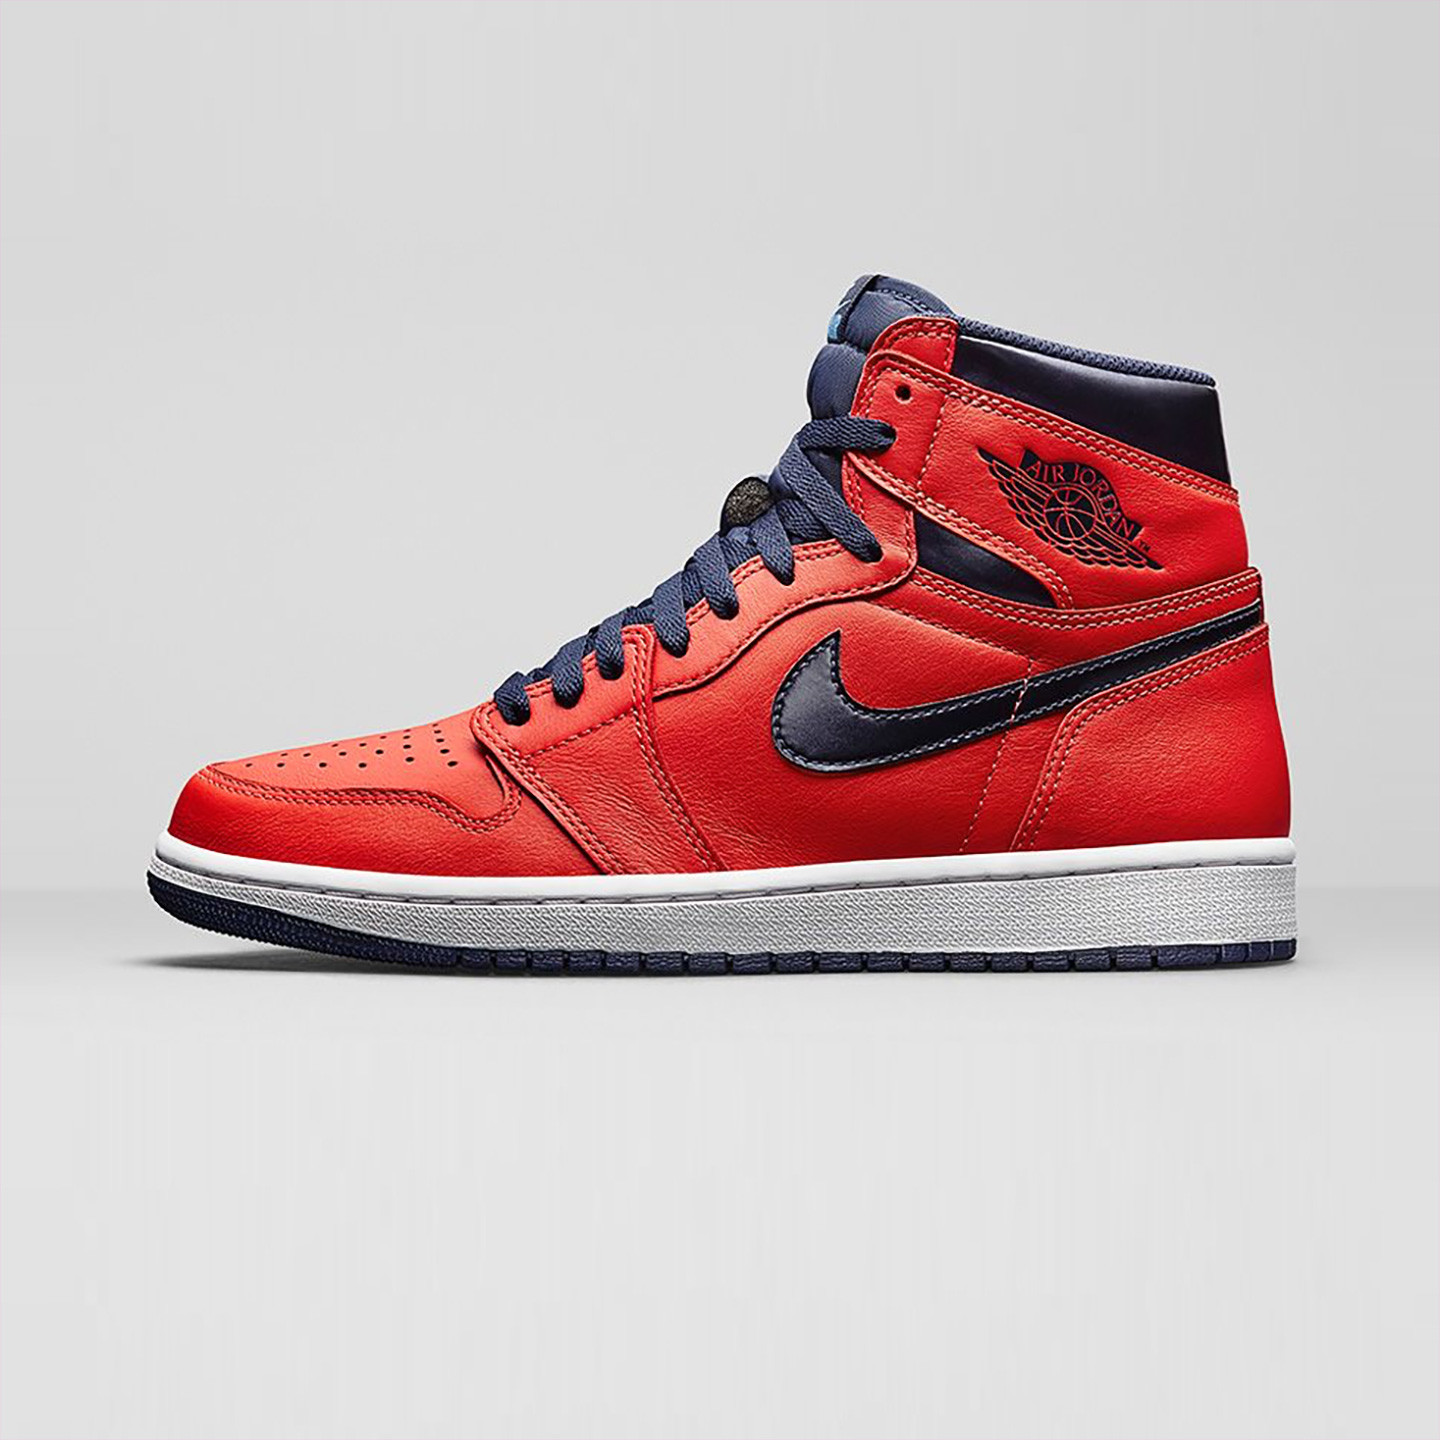 Nike Air Jordan 1 Retro High OG 'Letterman' Light Crimson / University Blue 555088-606-47